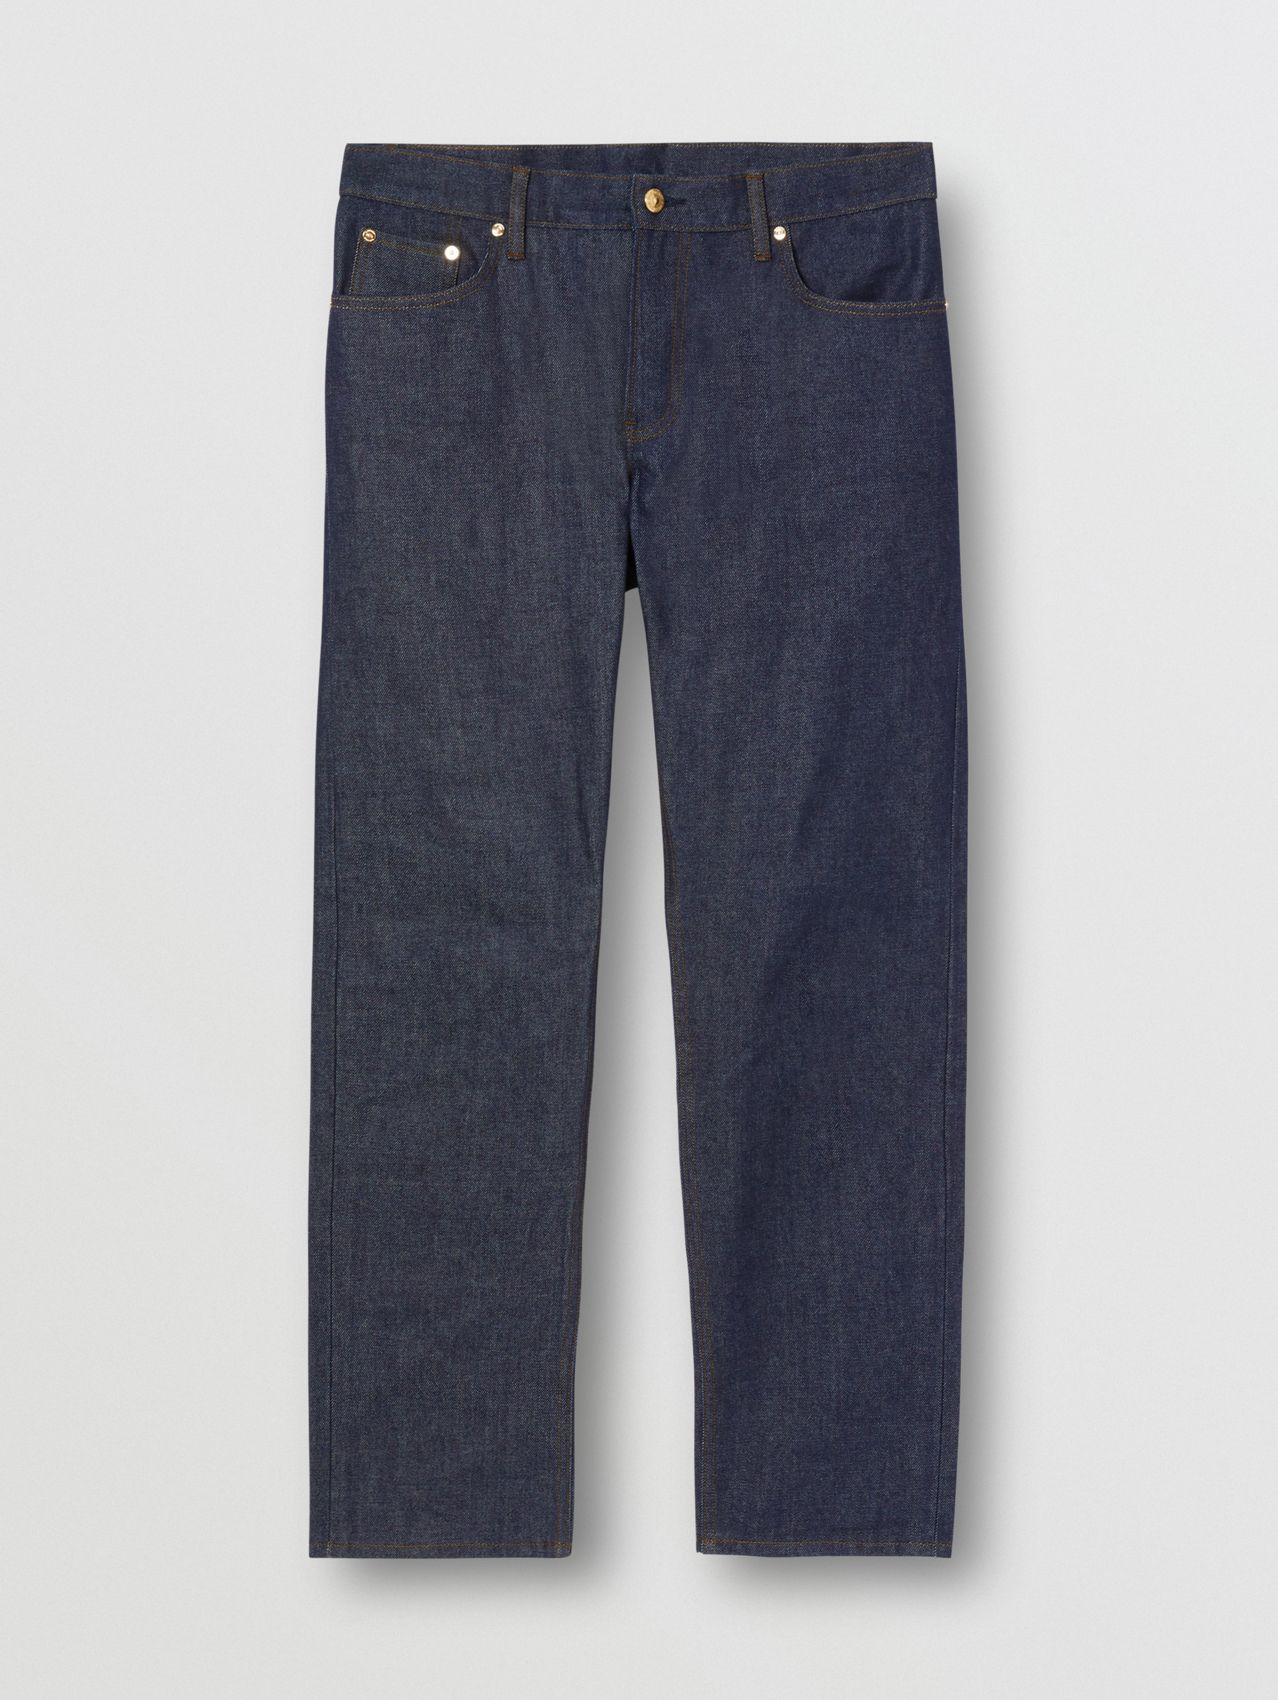 Straight Fit Raw Denim Jeans (Indigo)